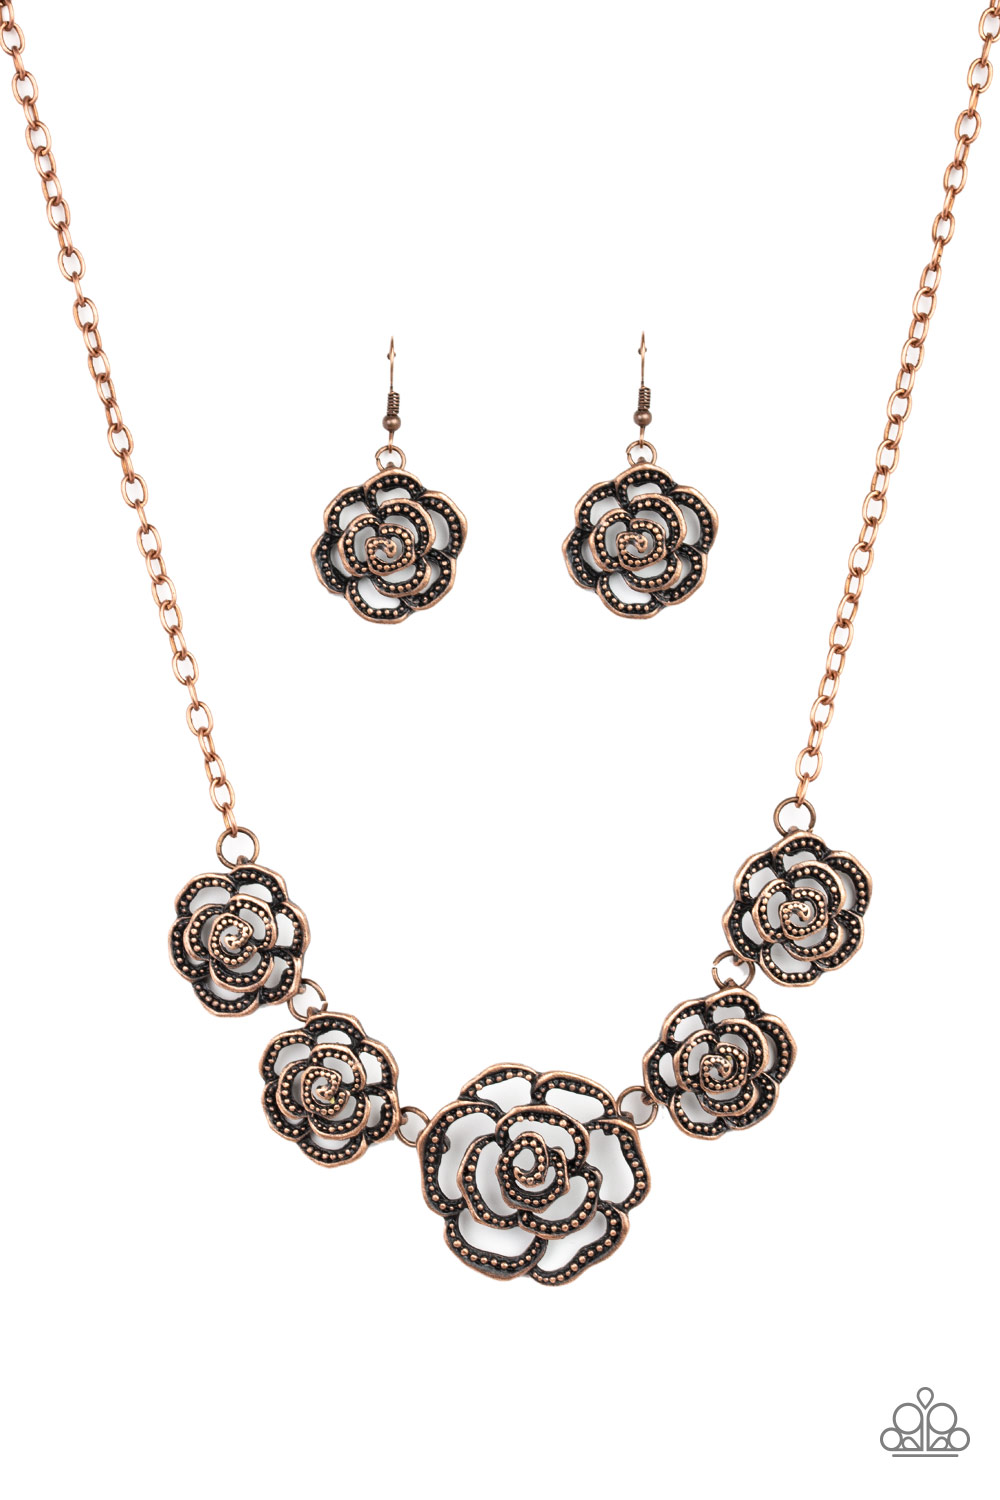 Copper Floral Necklace and Earrings Set by Paparazzi $5.00 the set. www.my-bling.com